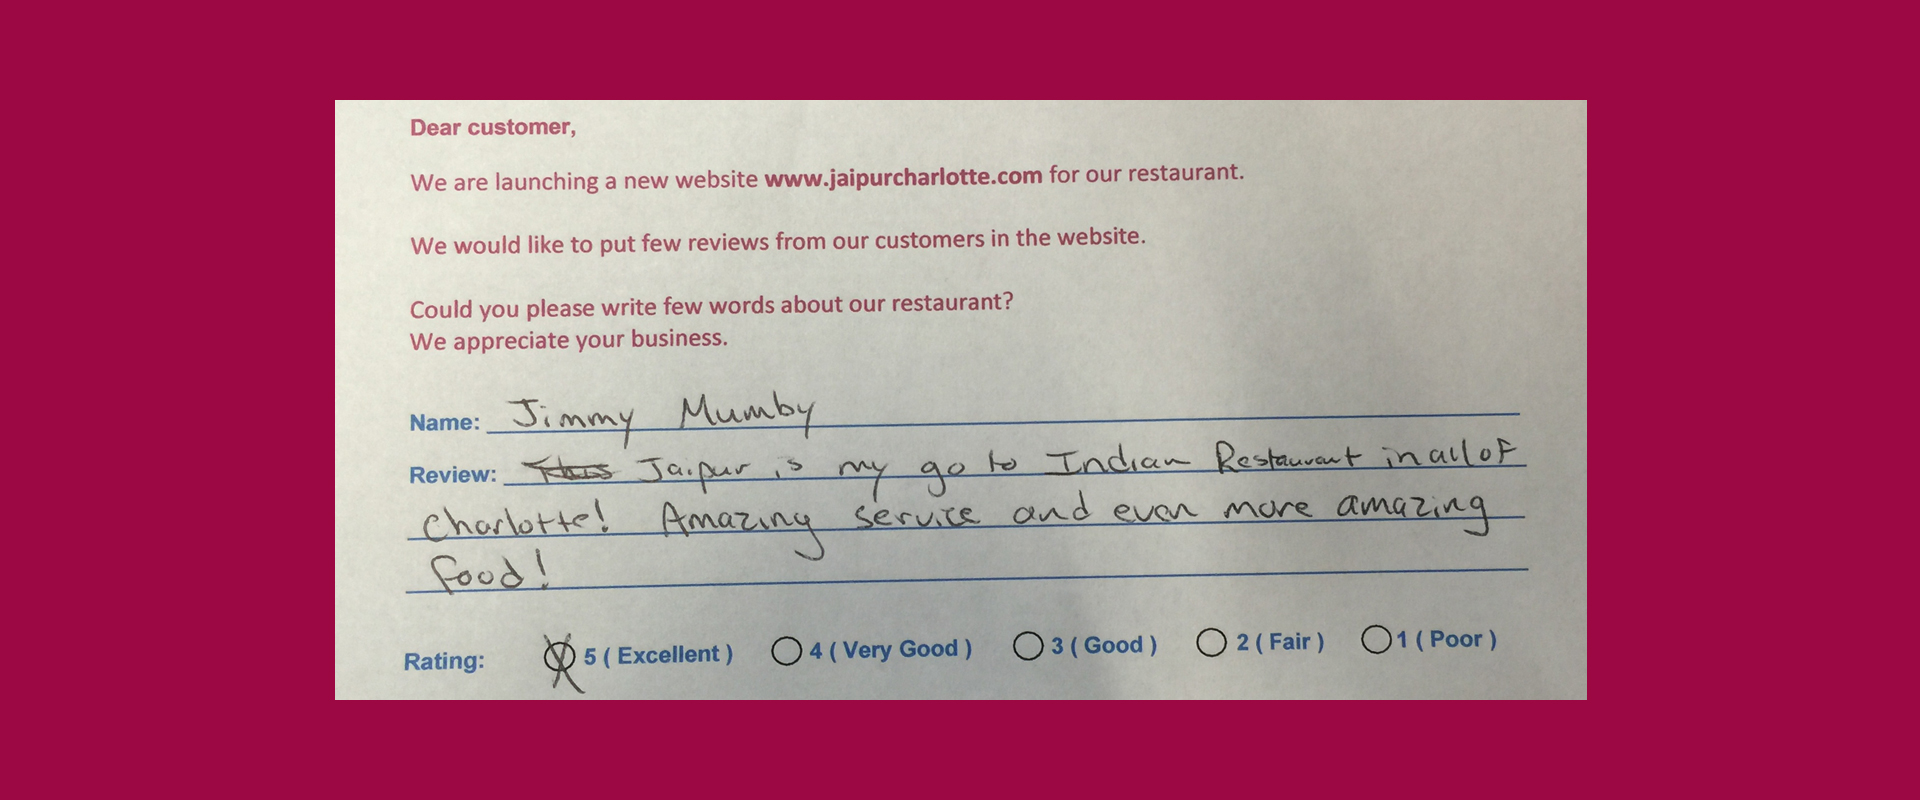 Jaipur Indian Restaurant Customer Review by Jimmy Mumby - Rating 5 out of 5